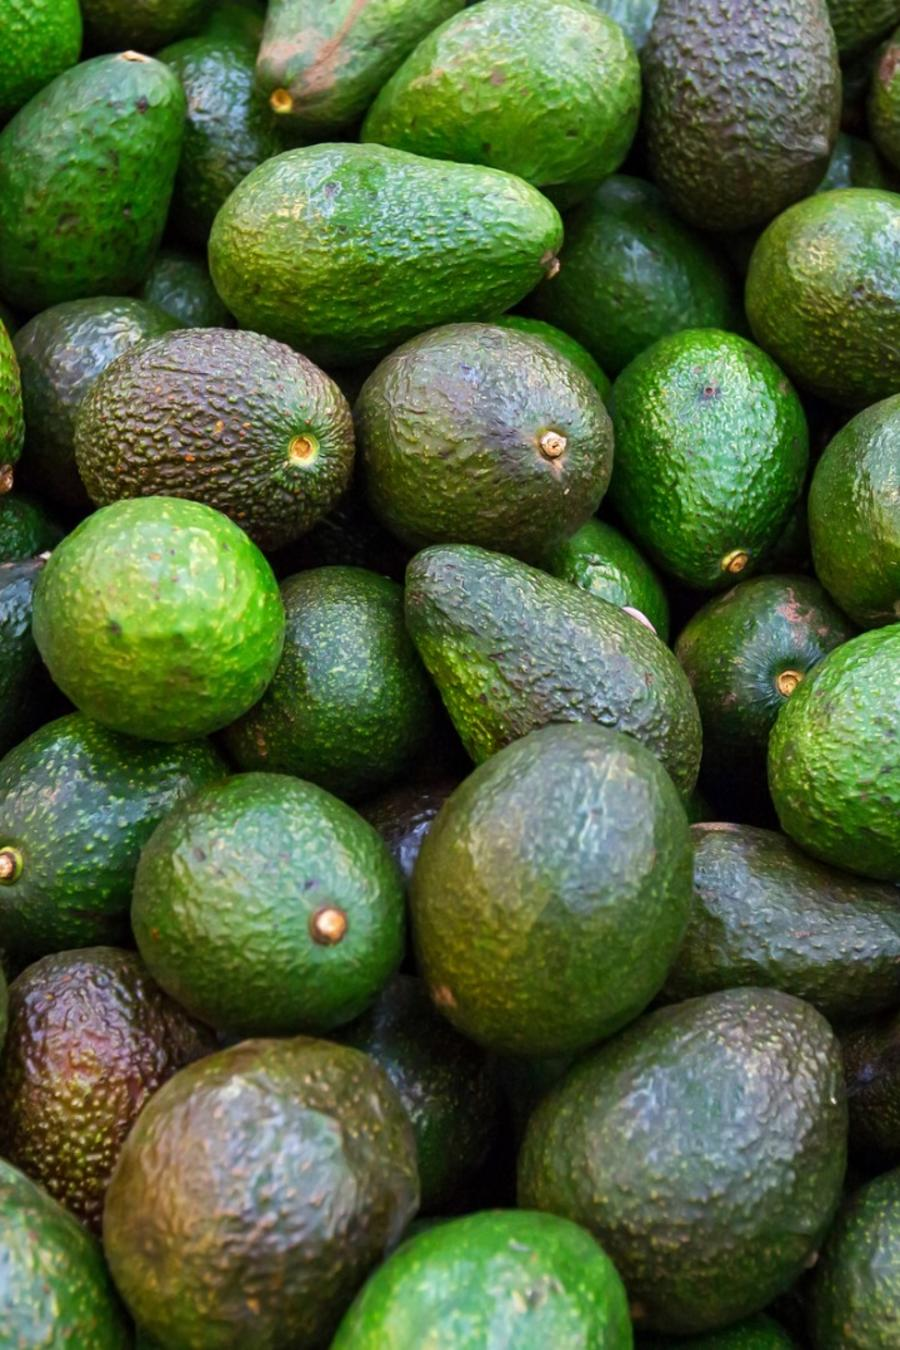 Whole avocados in the market.